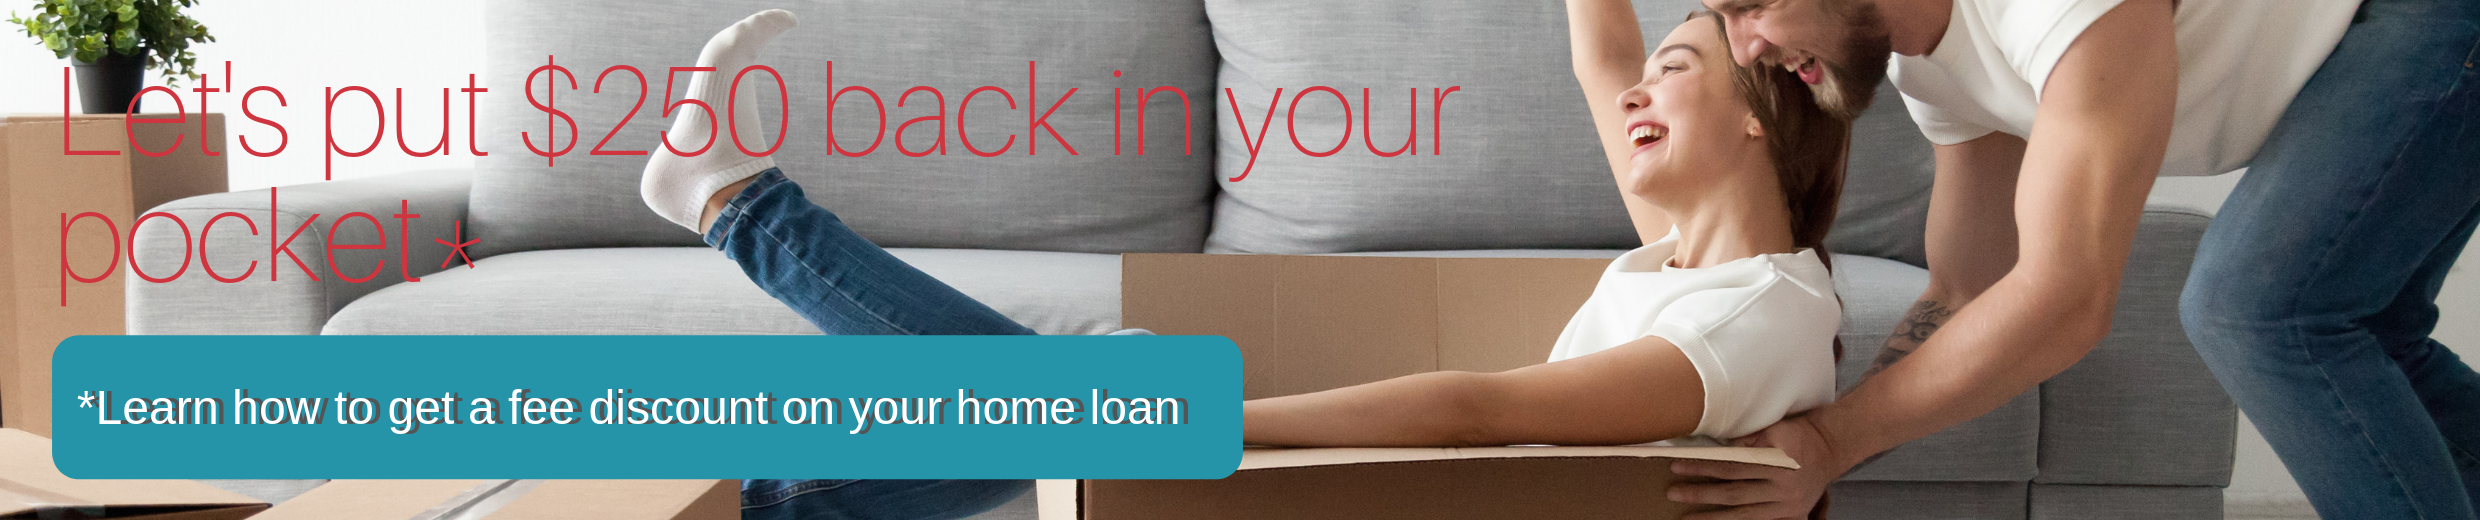 Let's put $250 back in your pocket. Learn how to get a free discount on your home loan.